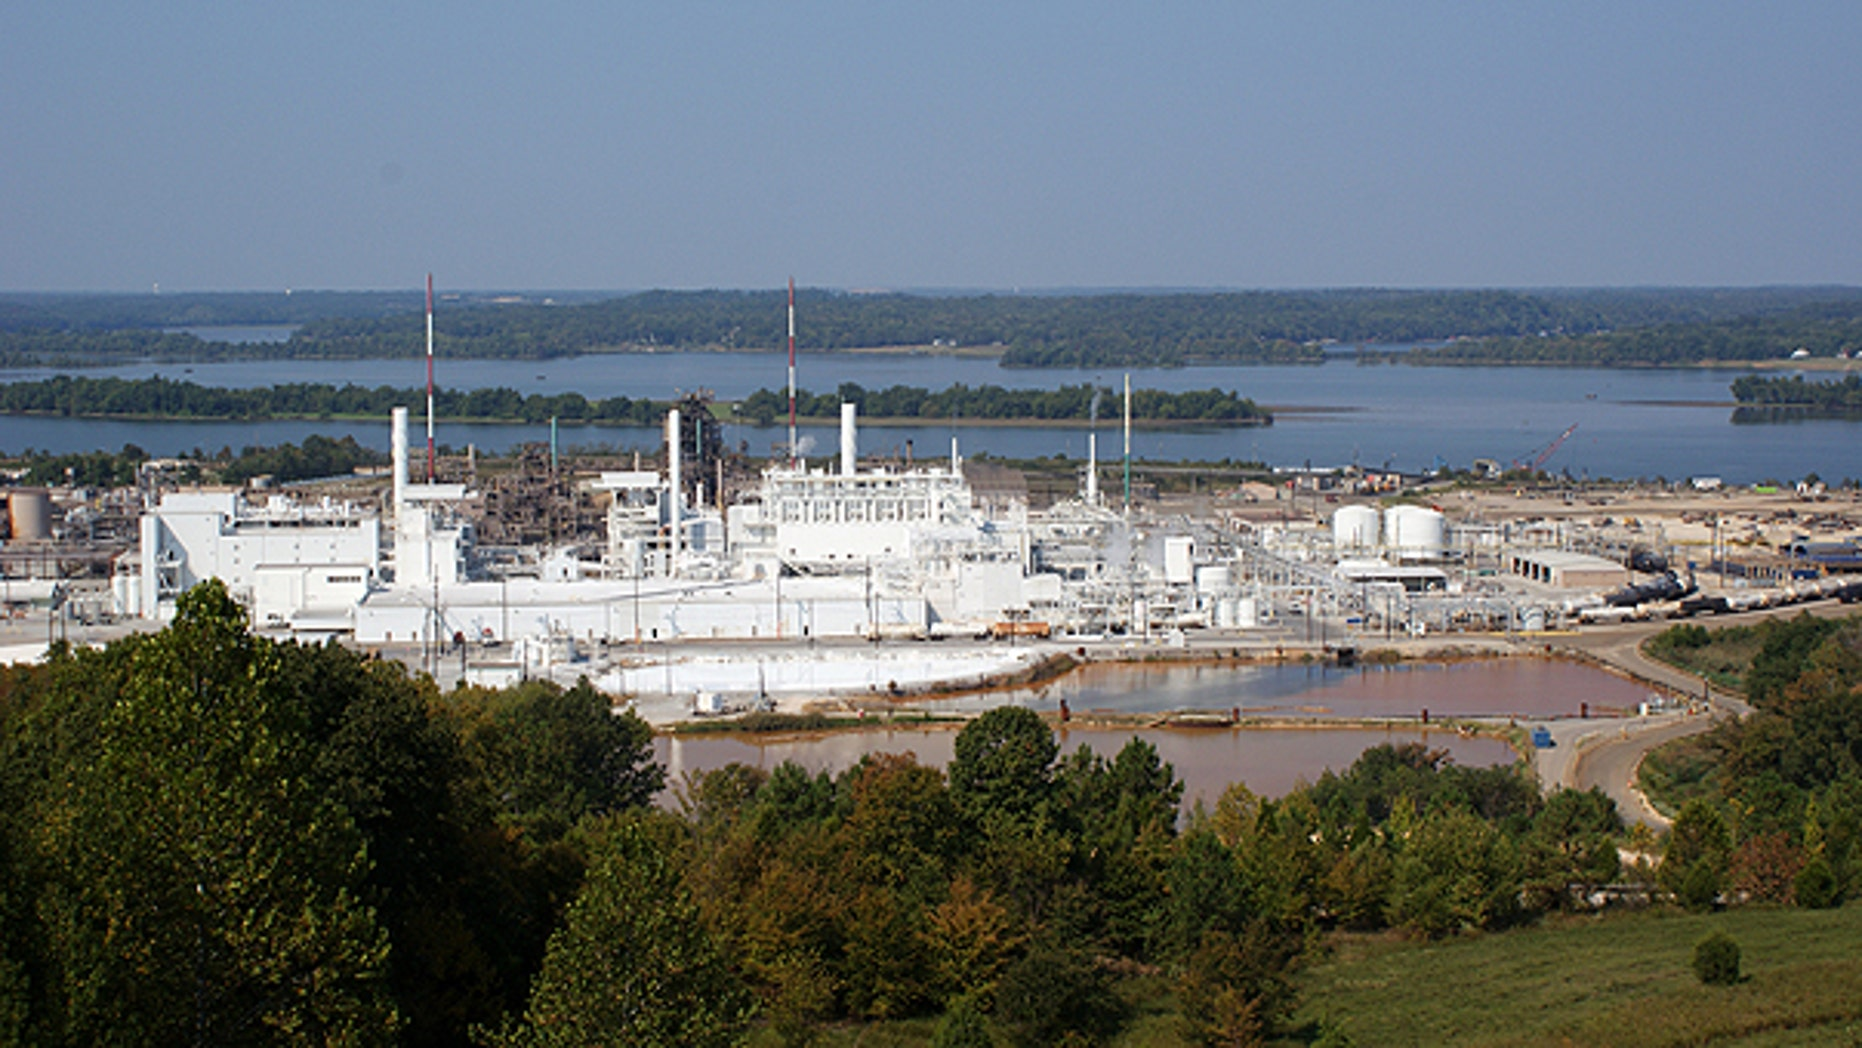 This undated handout photo provided by DuPont shows their titanium dioxide factory plant in New Johnsonville, Tenn. Some of the country's largest polluters of heat-trapping gases, including businesses that publicly support curbs on global warming, don't want the public knowing exactly how much they pollute.